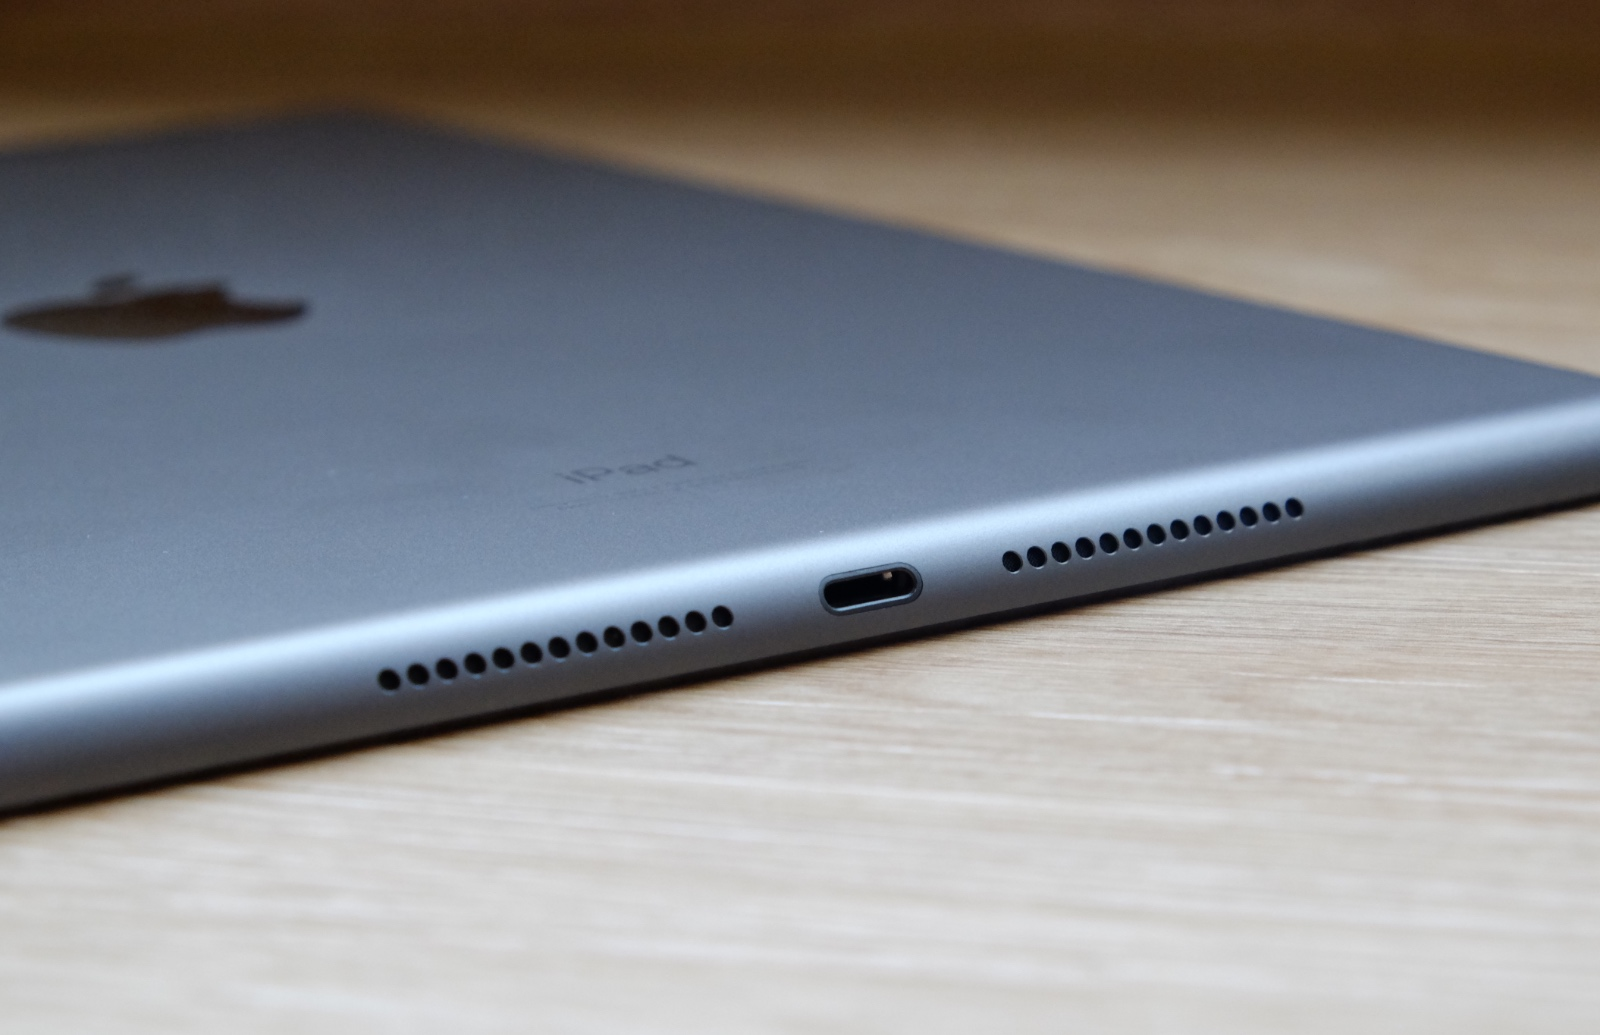 The is now the only iPad to still use the Lightning port.